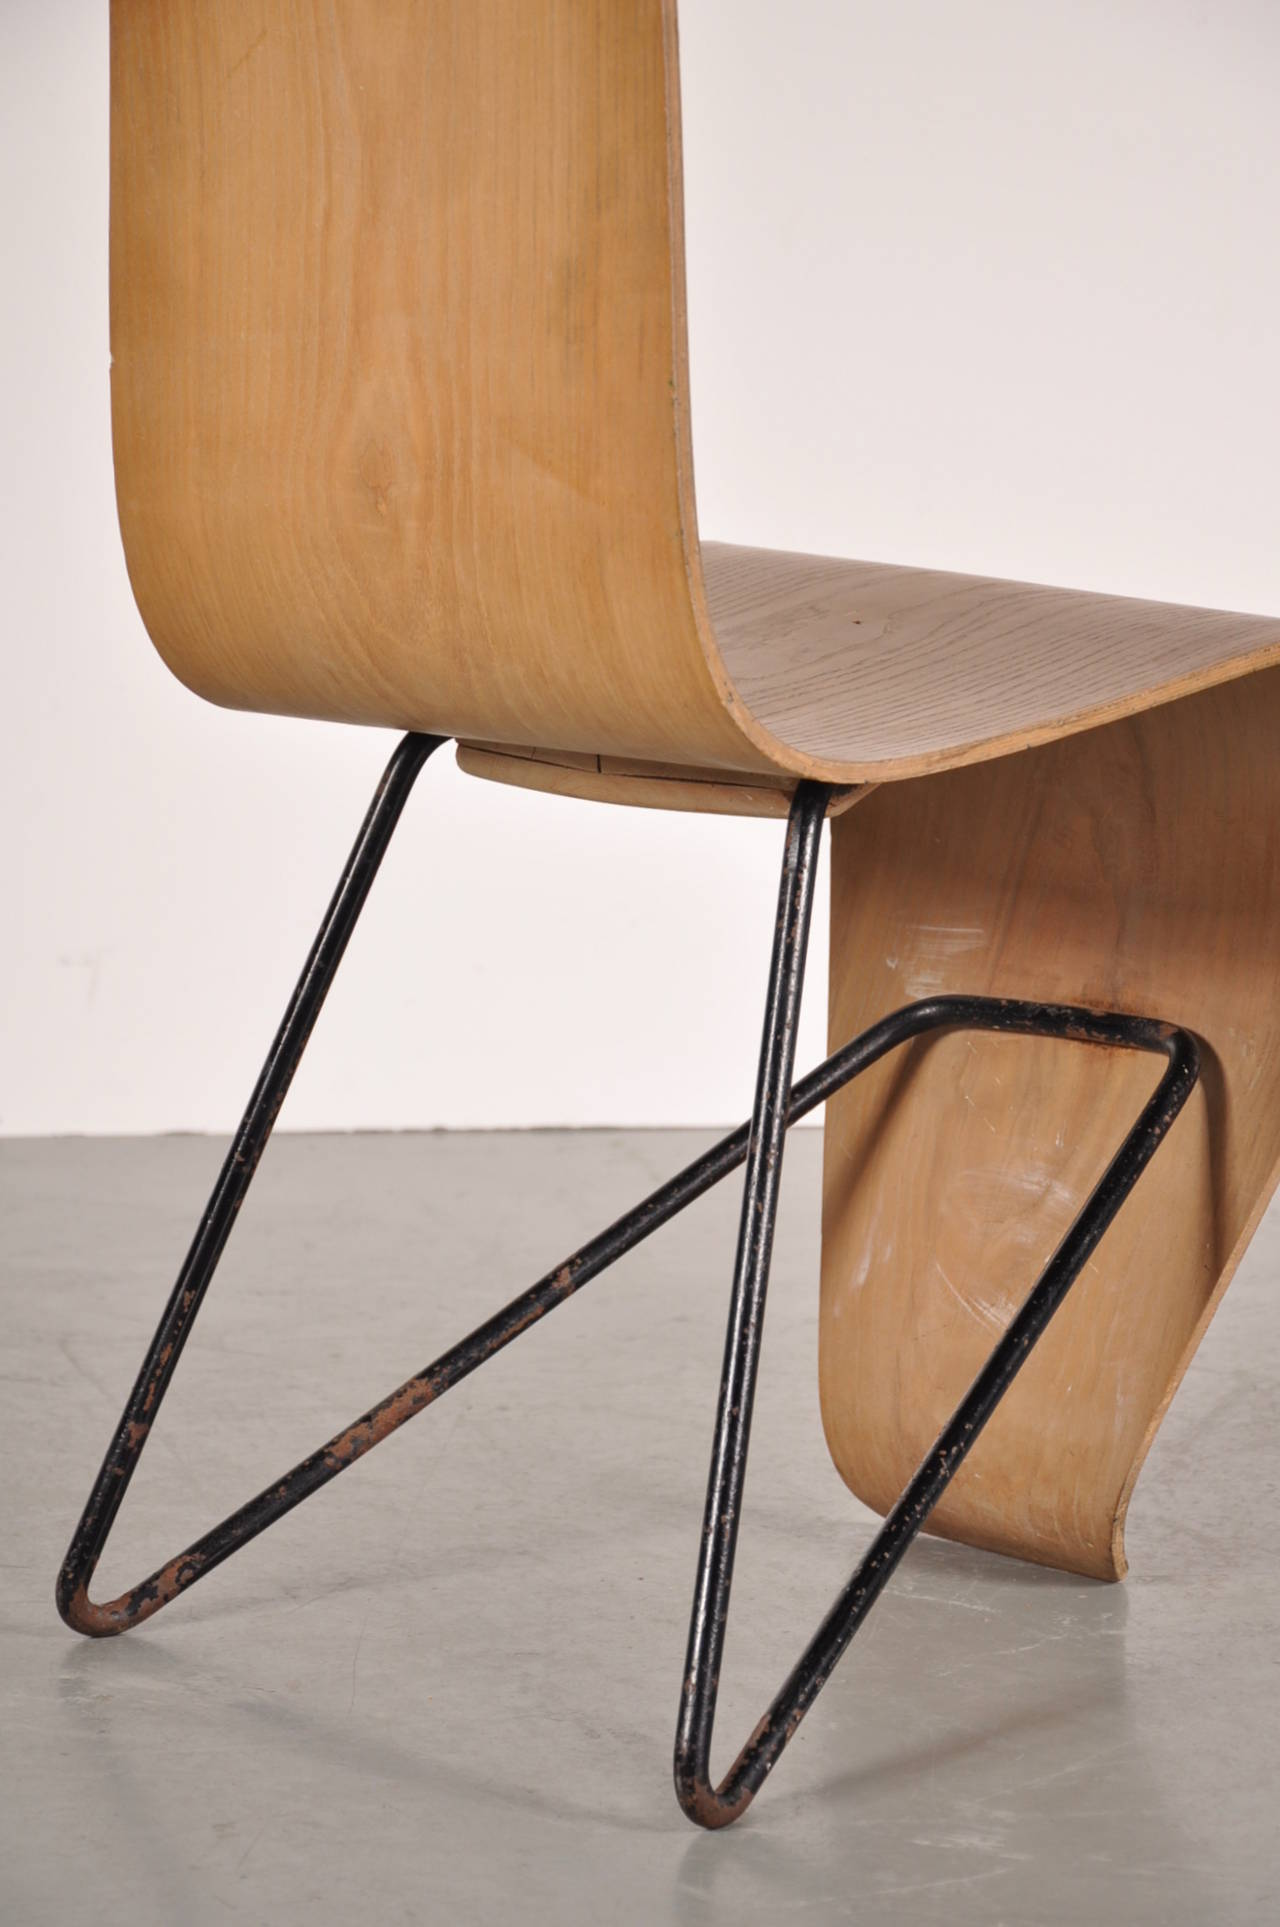 Original bellevue chair by andr bloc circa 1950 for sale for Furniture in bellevue